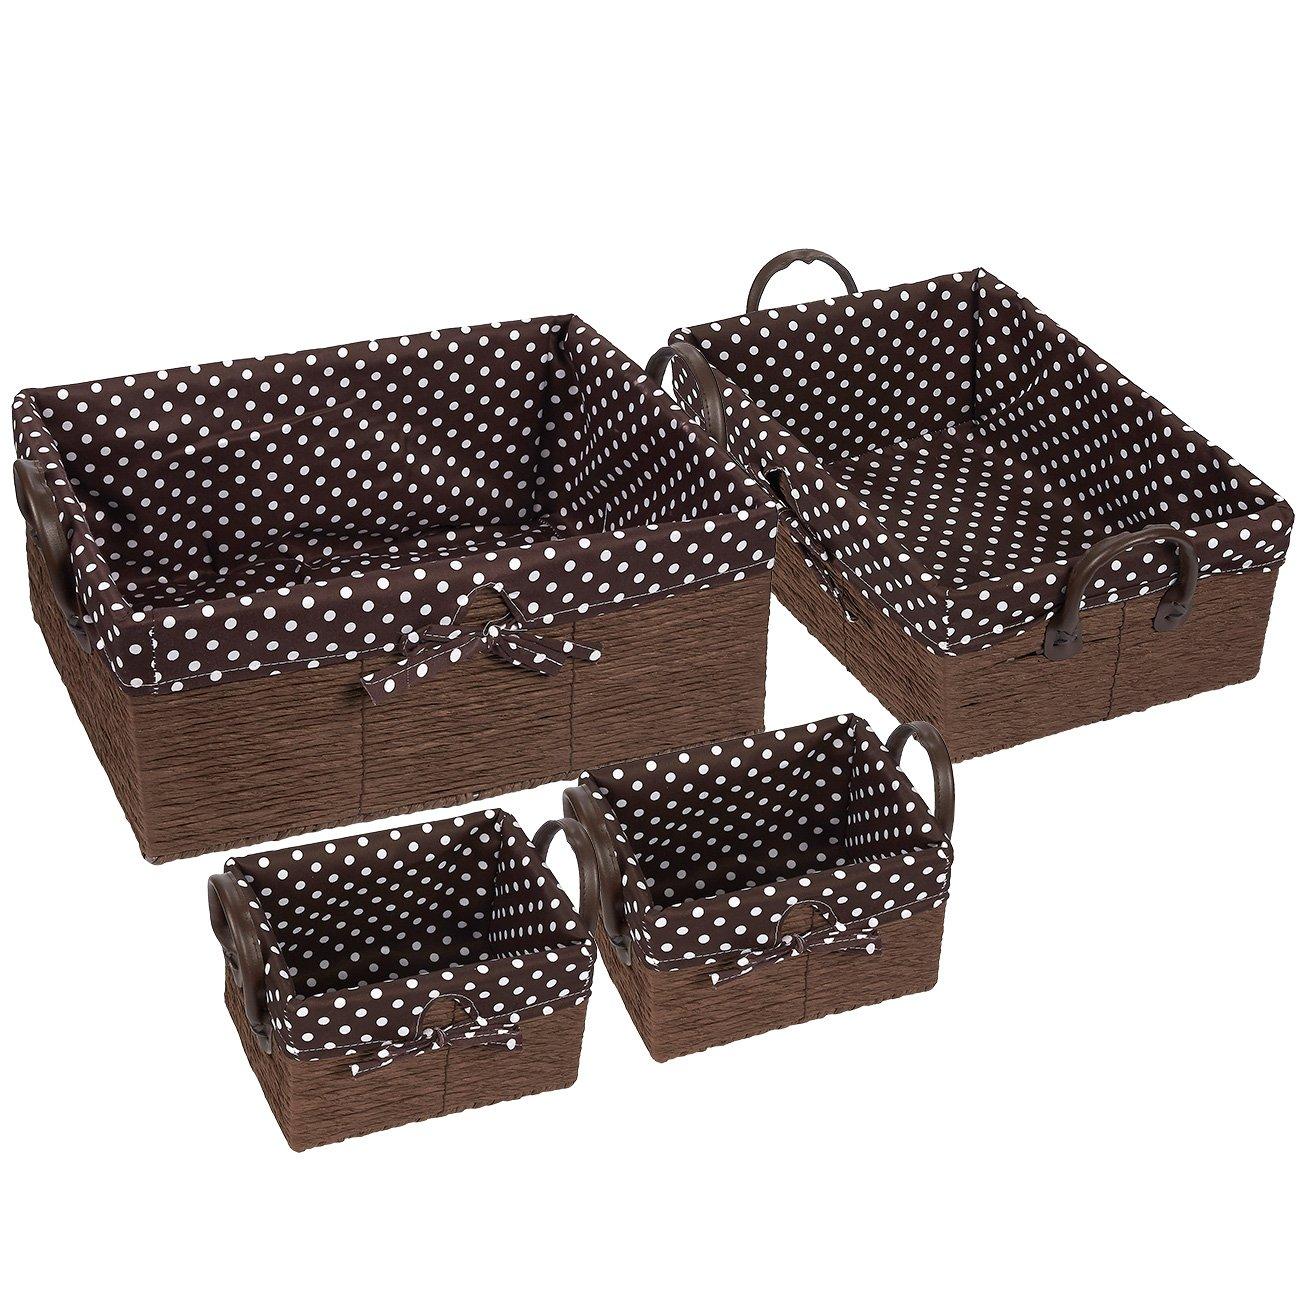 Fabric Storage Container – 4-Piece Utility Storage Baskets with Faux Leather Handles - Storage Cube Nesting Baskets, Decorative Organizing Baskets for Shelves – White Polka Dots on Brown Lining